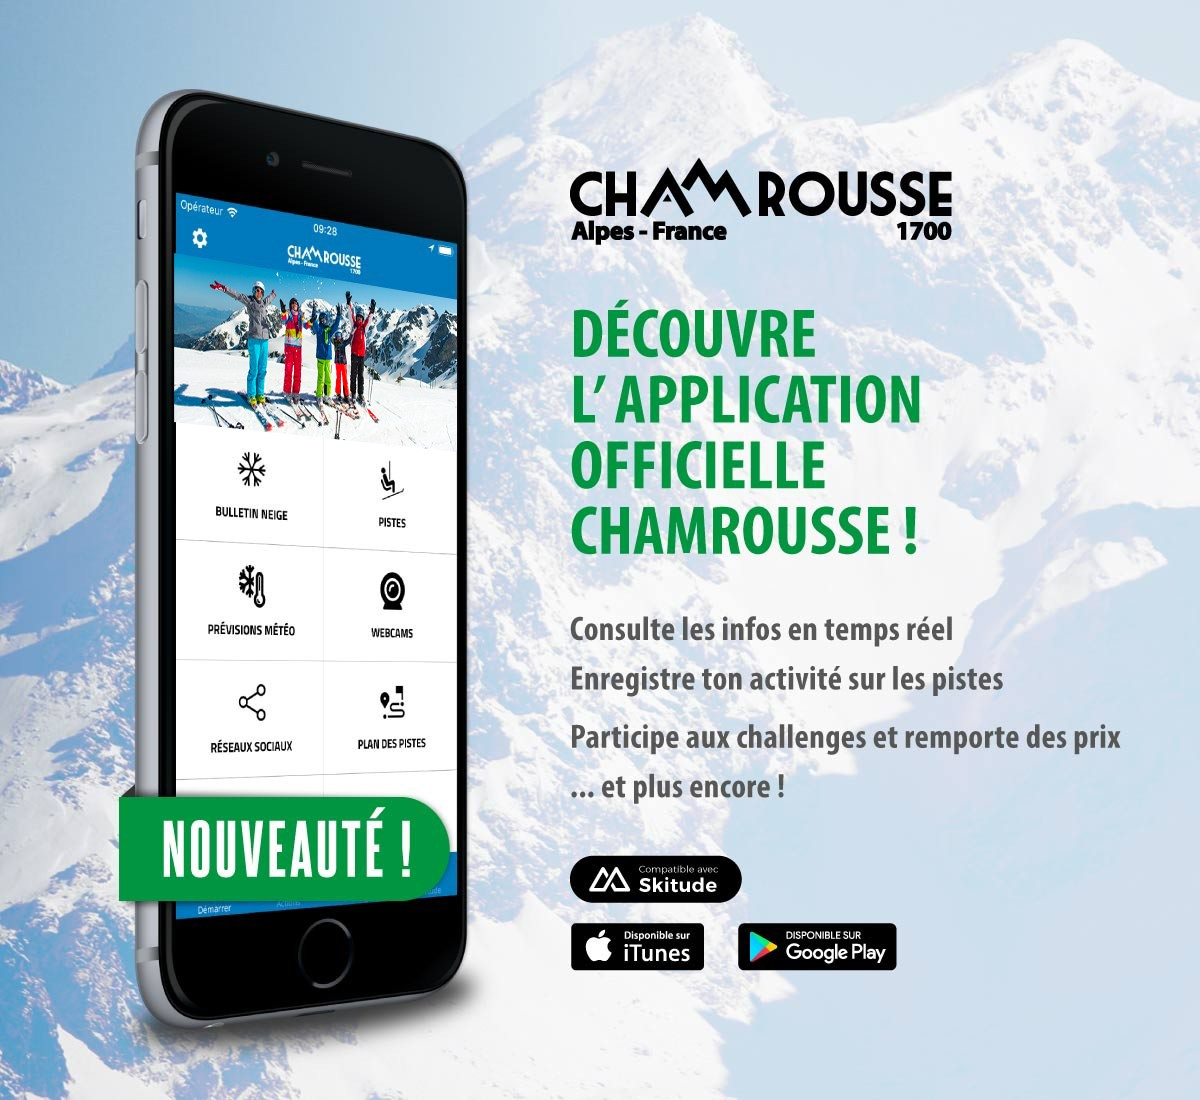 Application mobile Chamrousse station ski isère alpes France